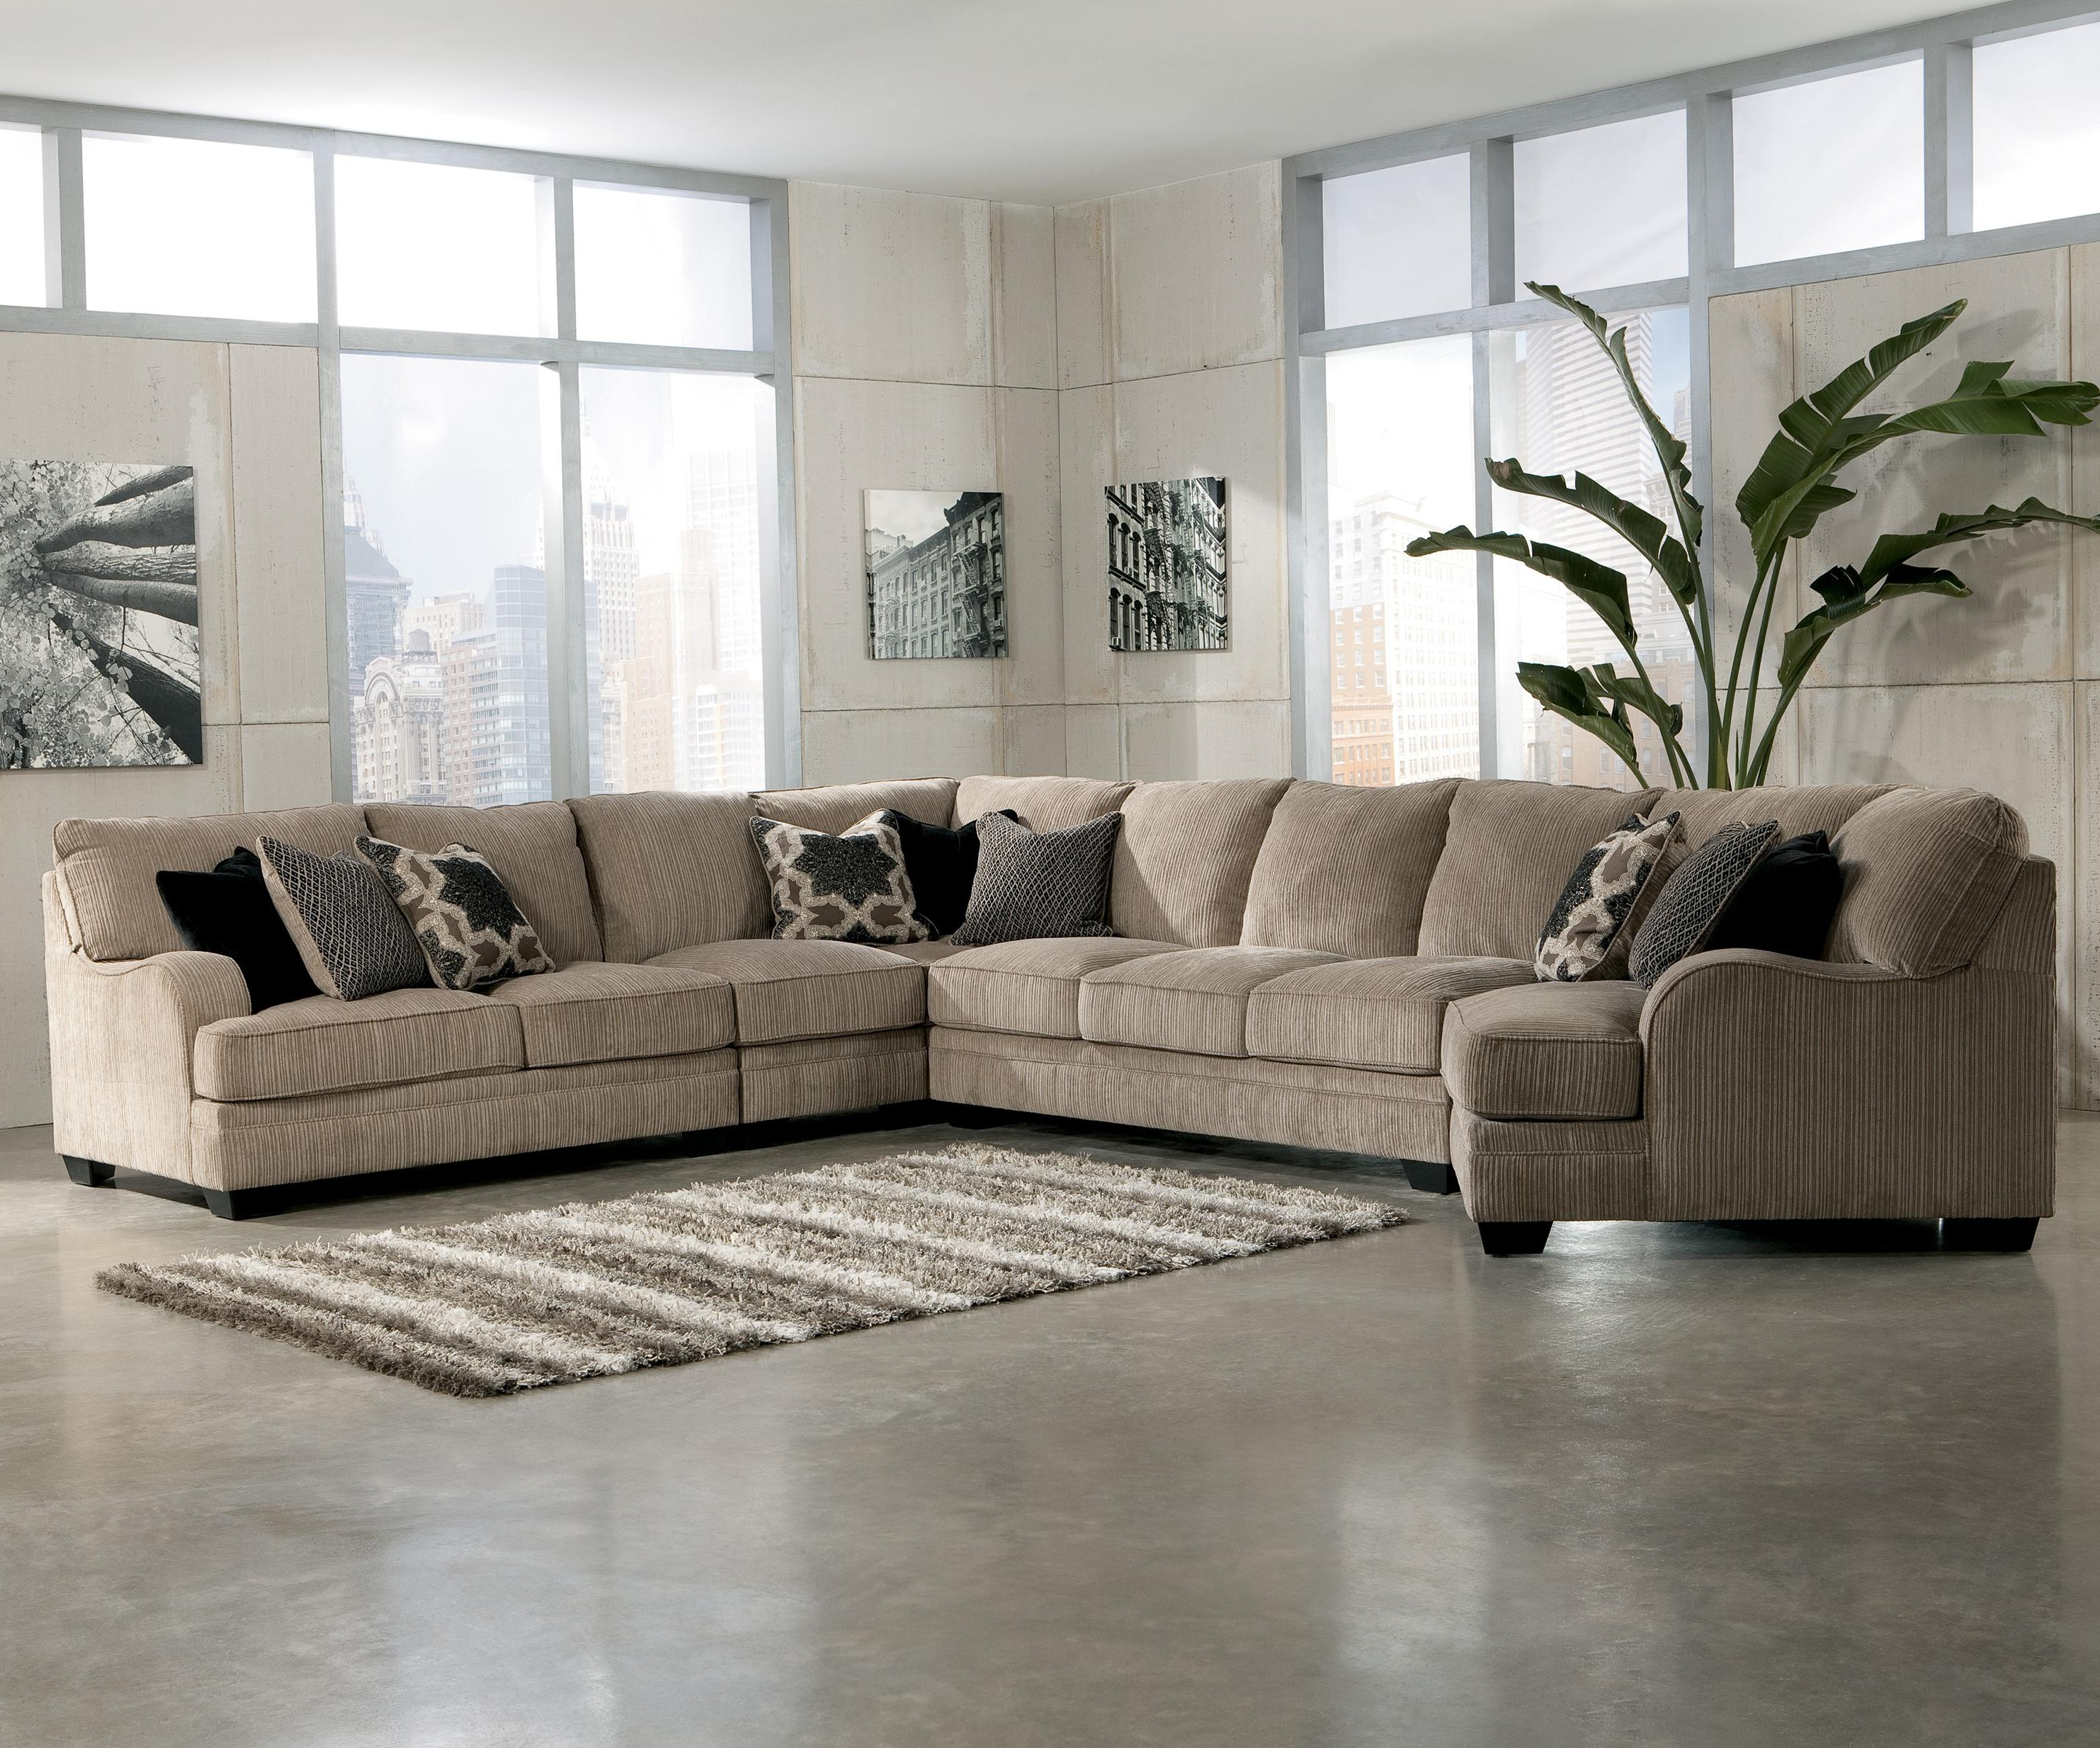 Signature Designashley Katisha – Platinum 5 Piece Sectional Sofa Regarding Well Known Norfolk Grey 6 Piece Sectionals With Laf Chaise (Gallery 14 of 20)